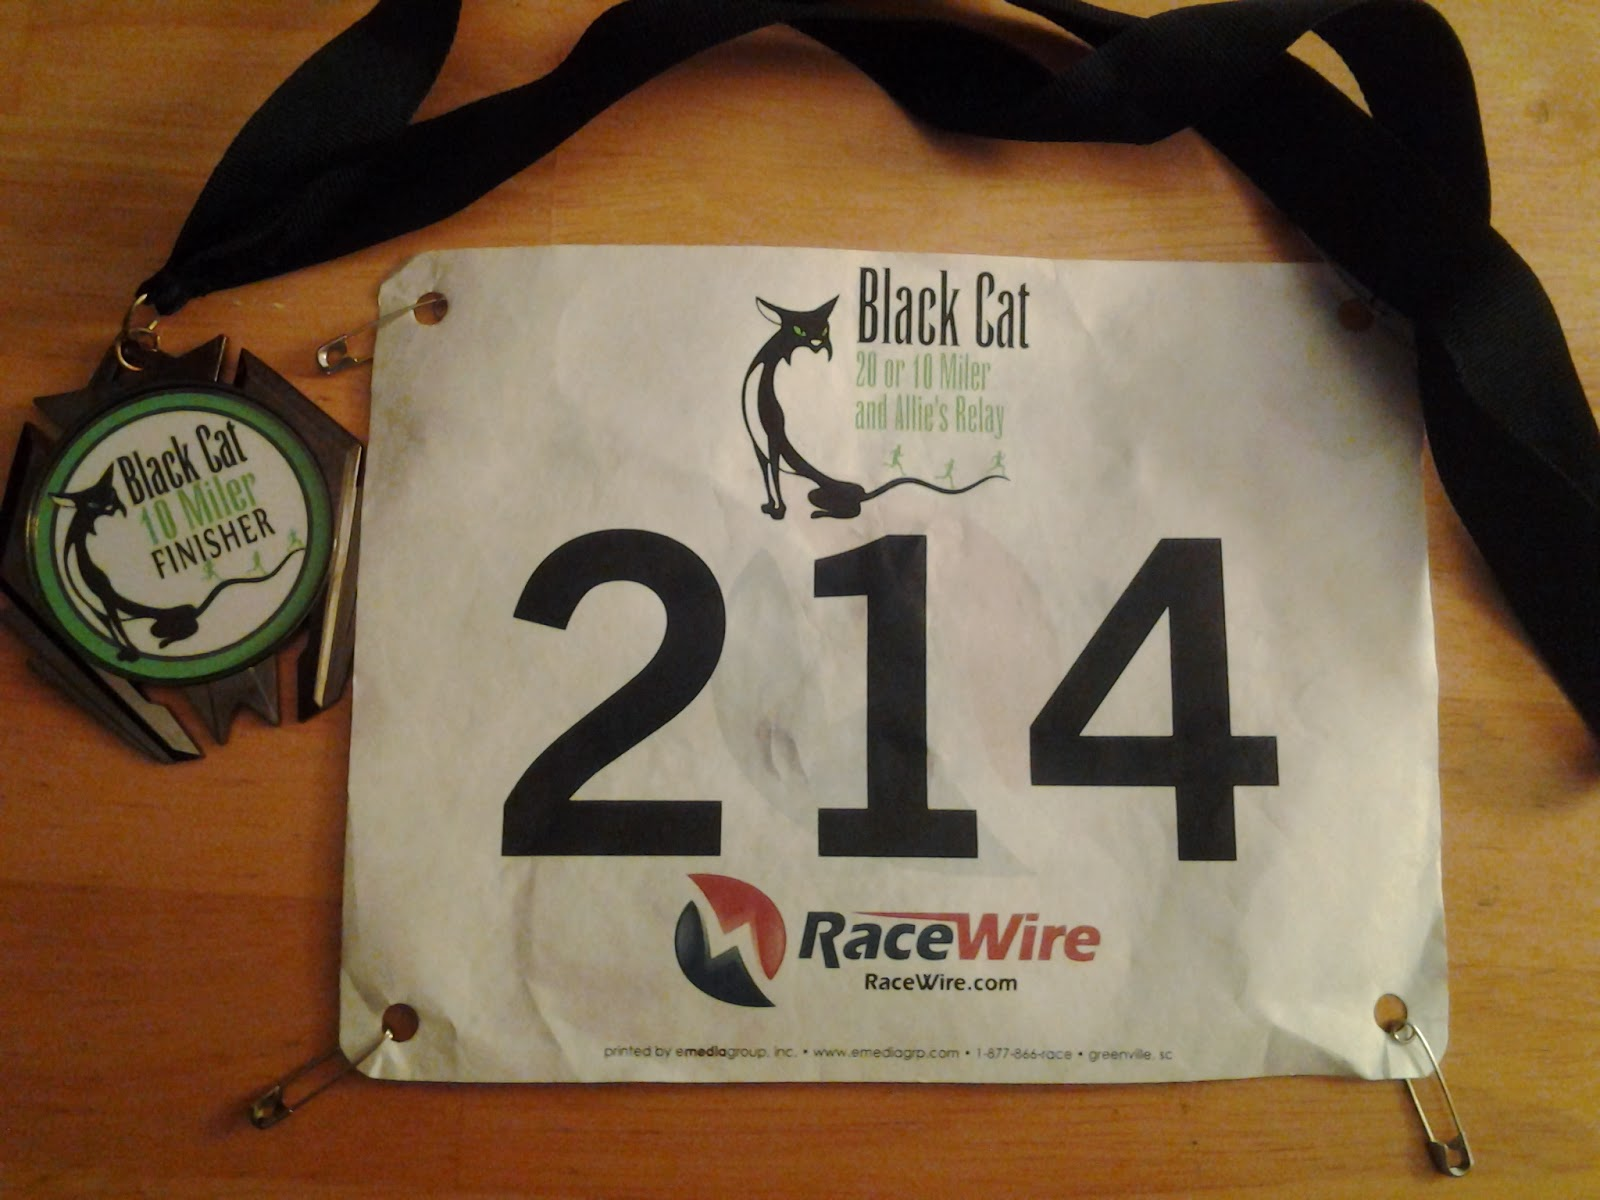 Black Cat 10 Mile - Medal and Number 2014